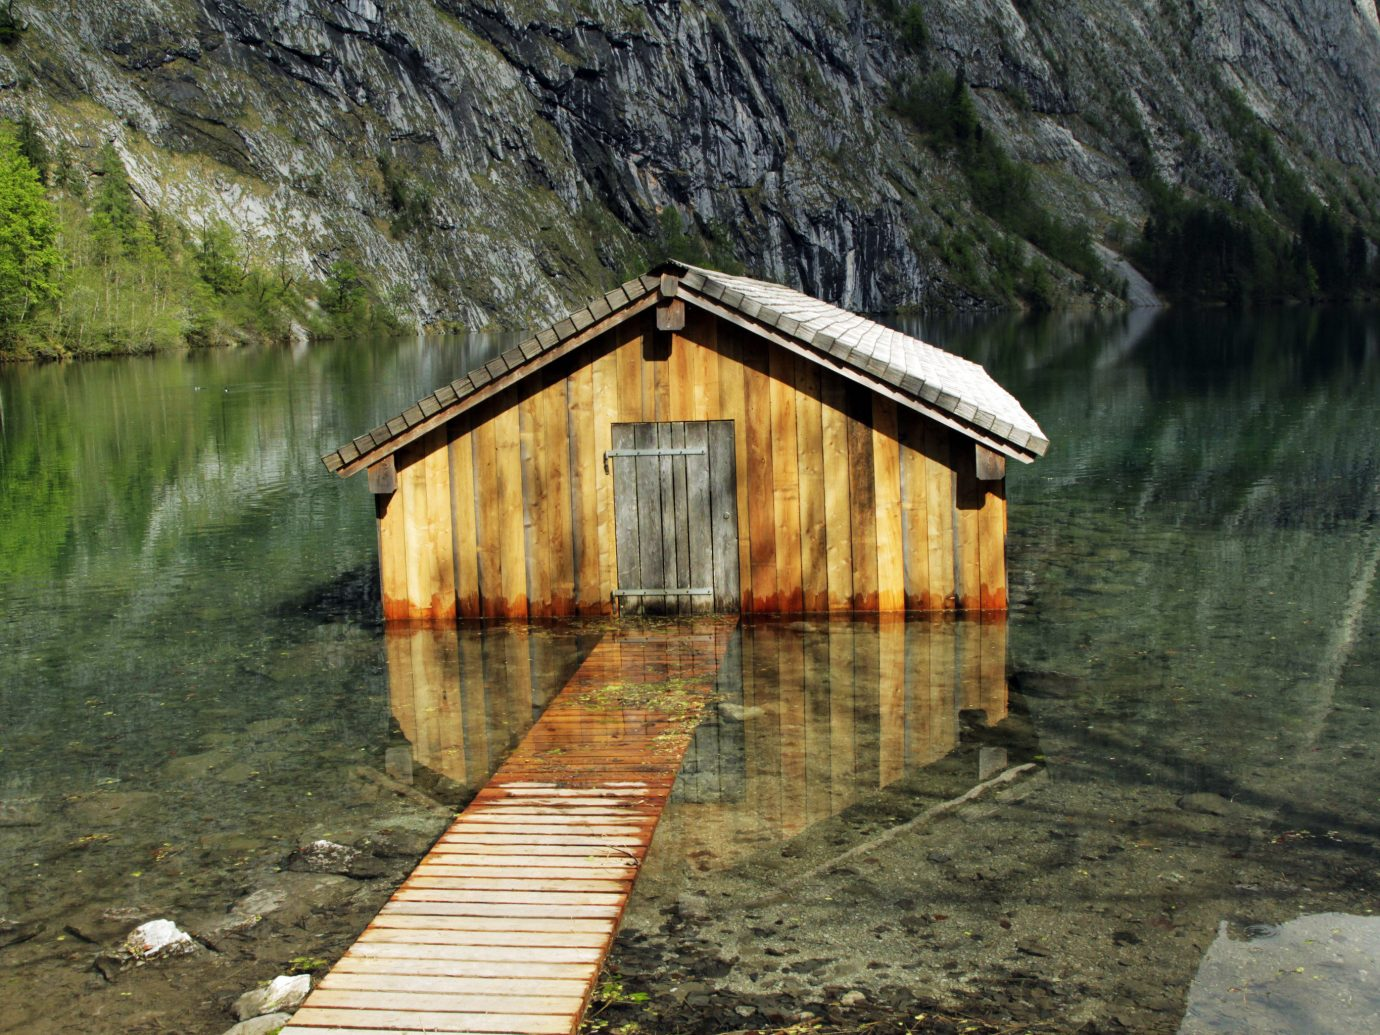 water outdoor River Lake mountain hut bridge rural area pond infrastructure reflection reservoir stone surrounded